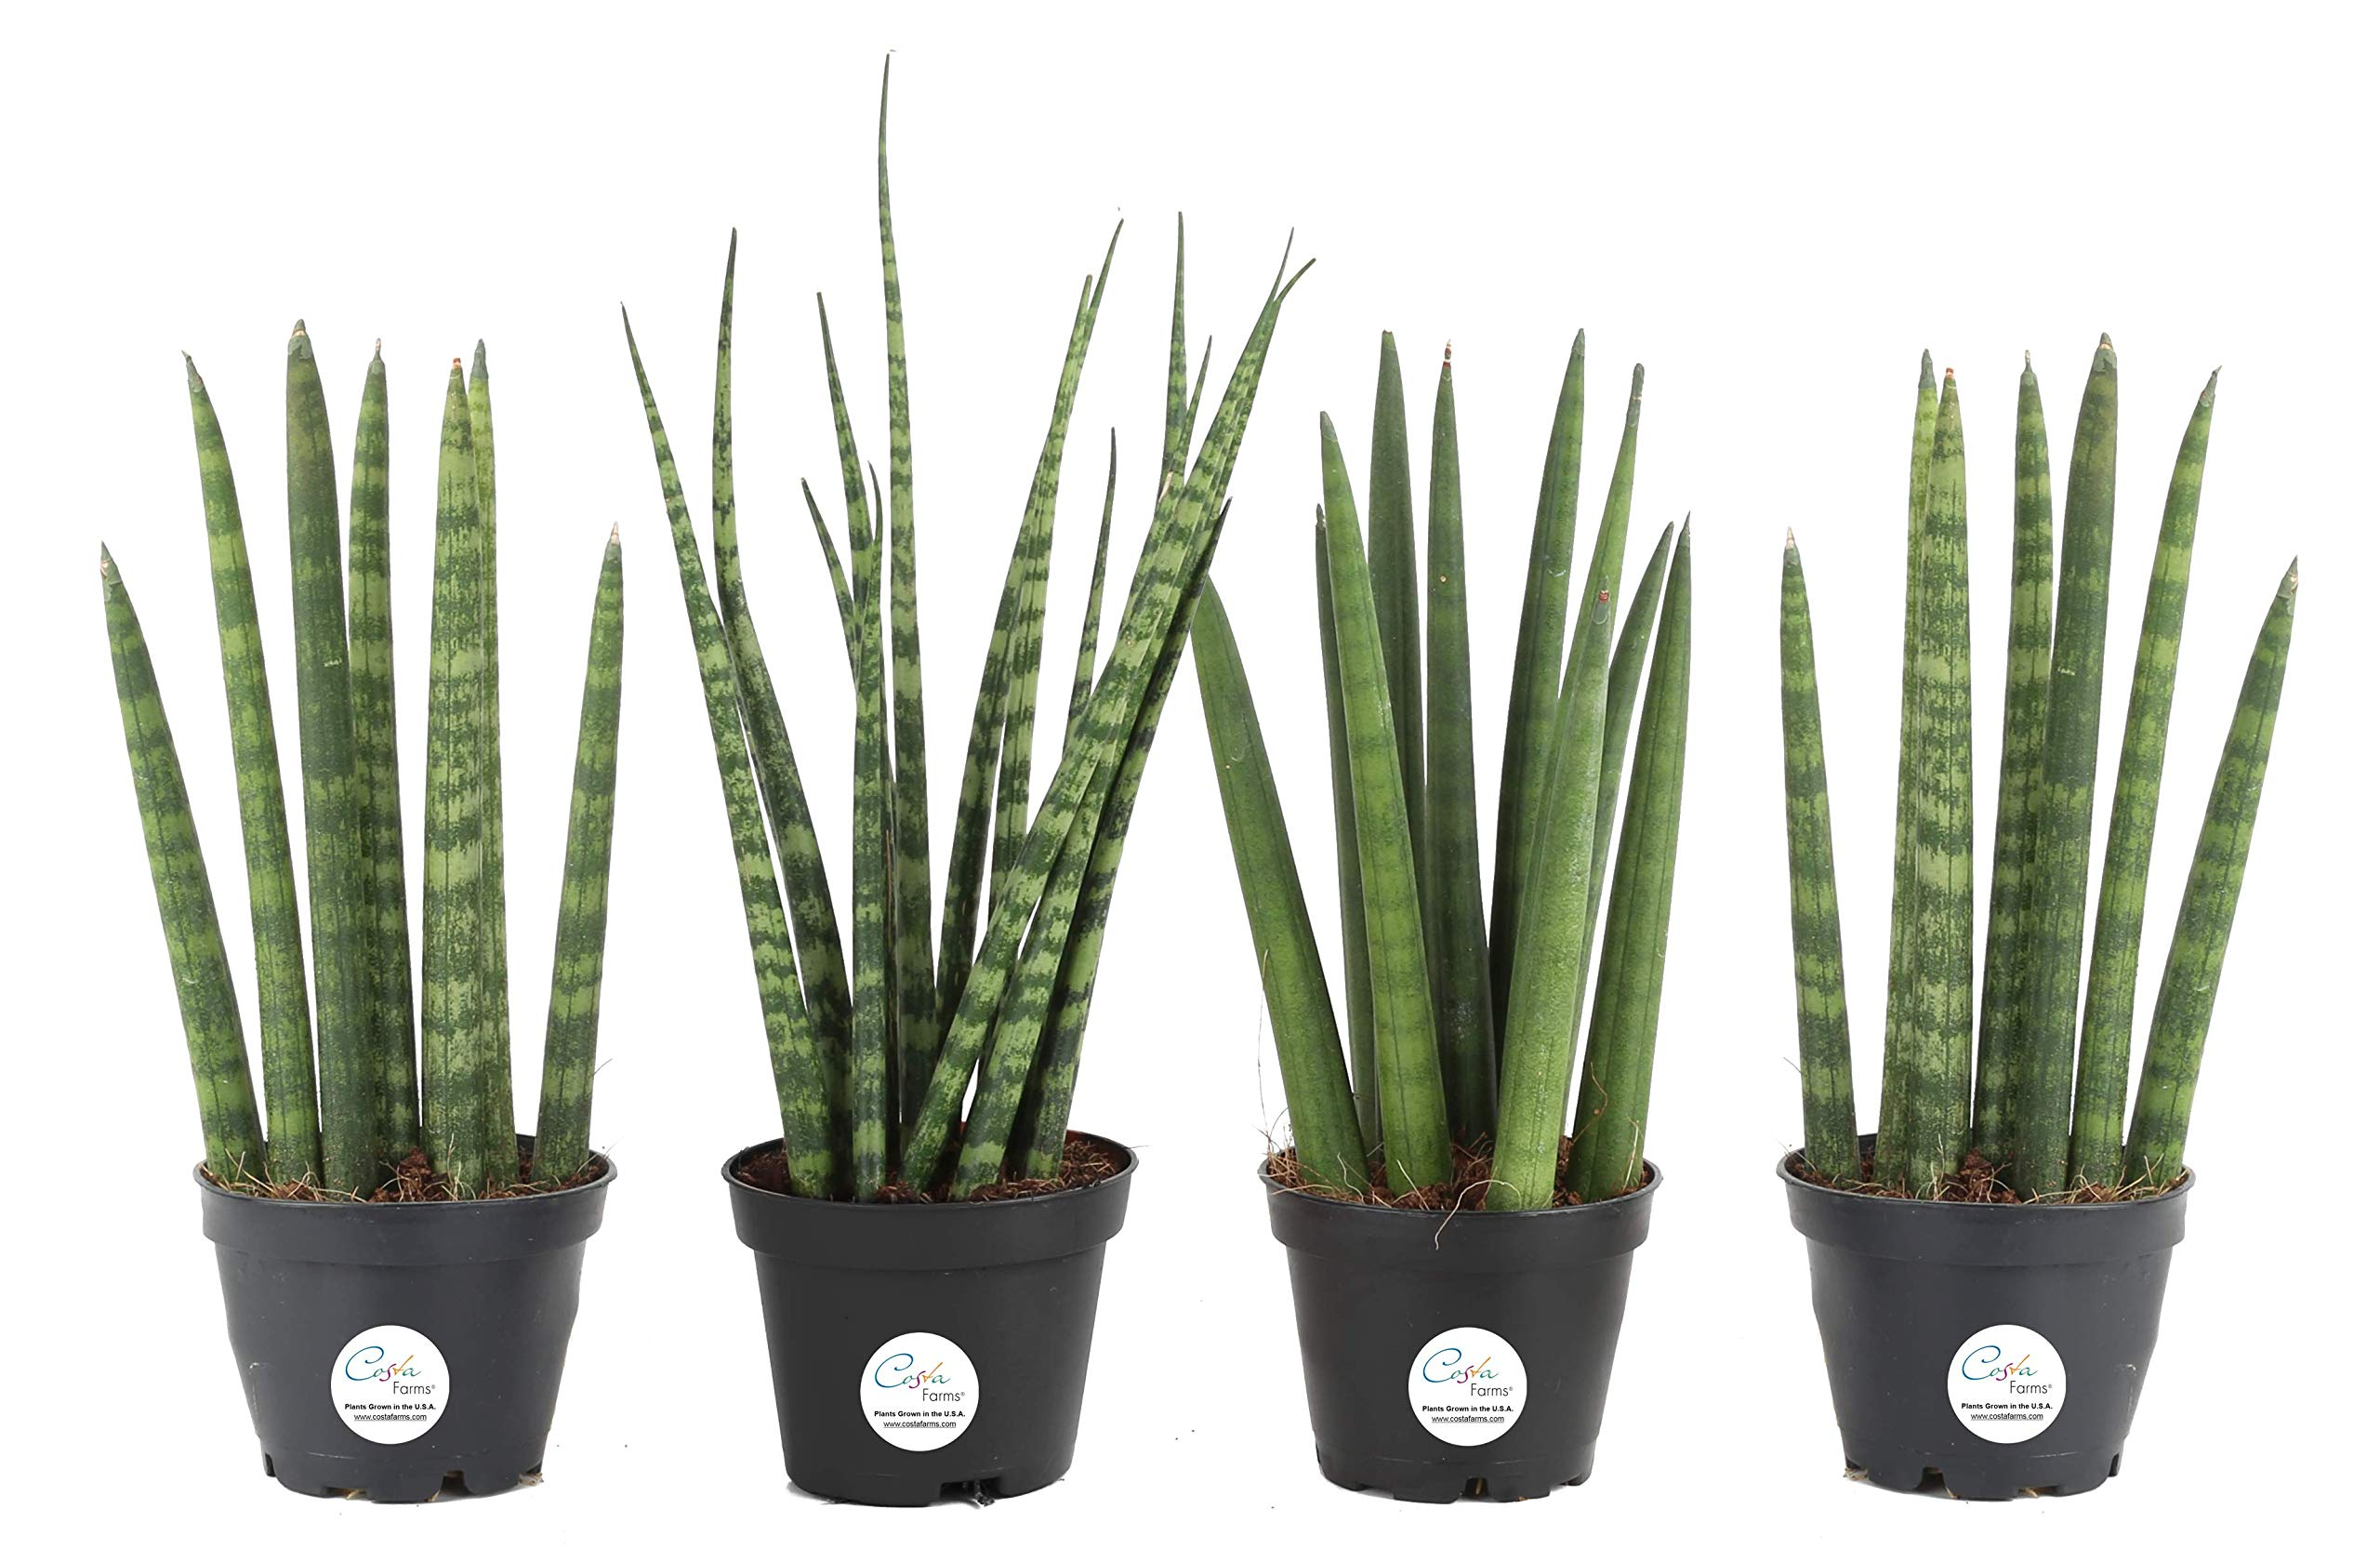 Costa Farms Sansevieria Cylindrica Succulent-Like Live Indoor Plant, 6-Inches Tall, Grower's Choice by Costa Farms